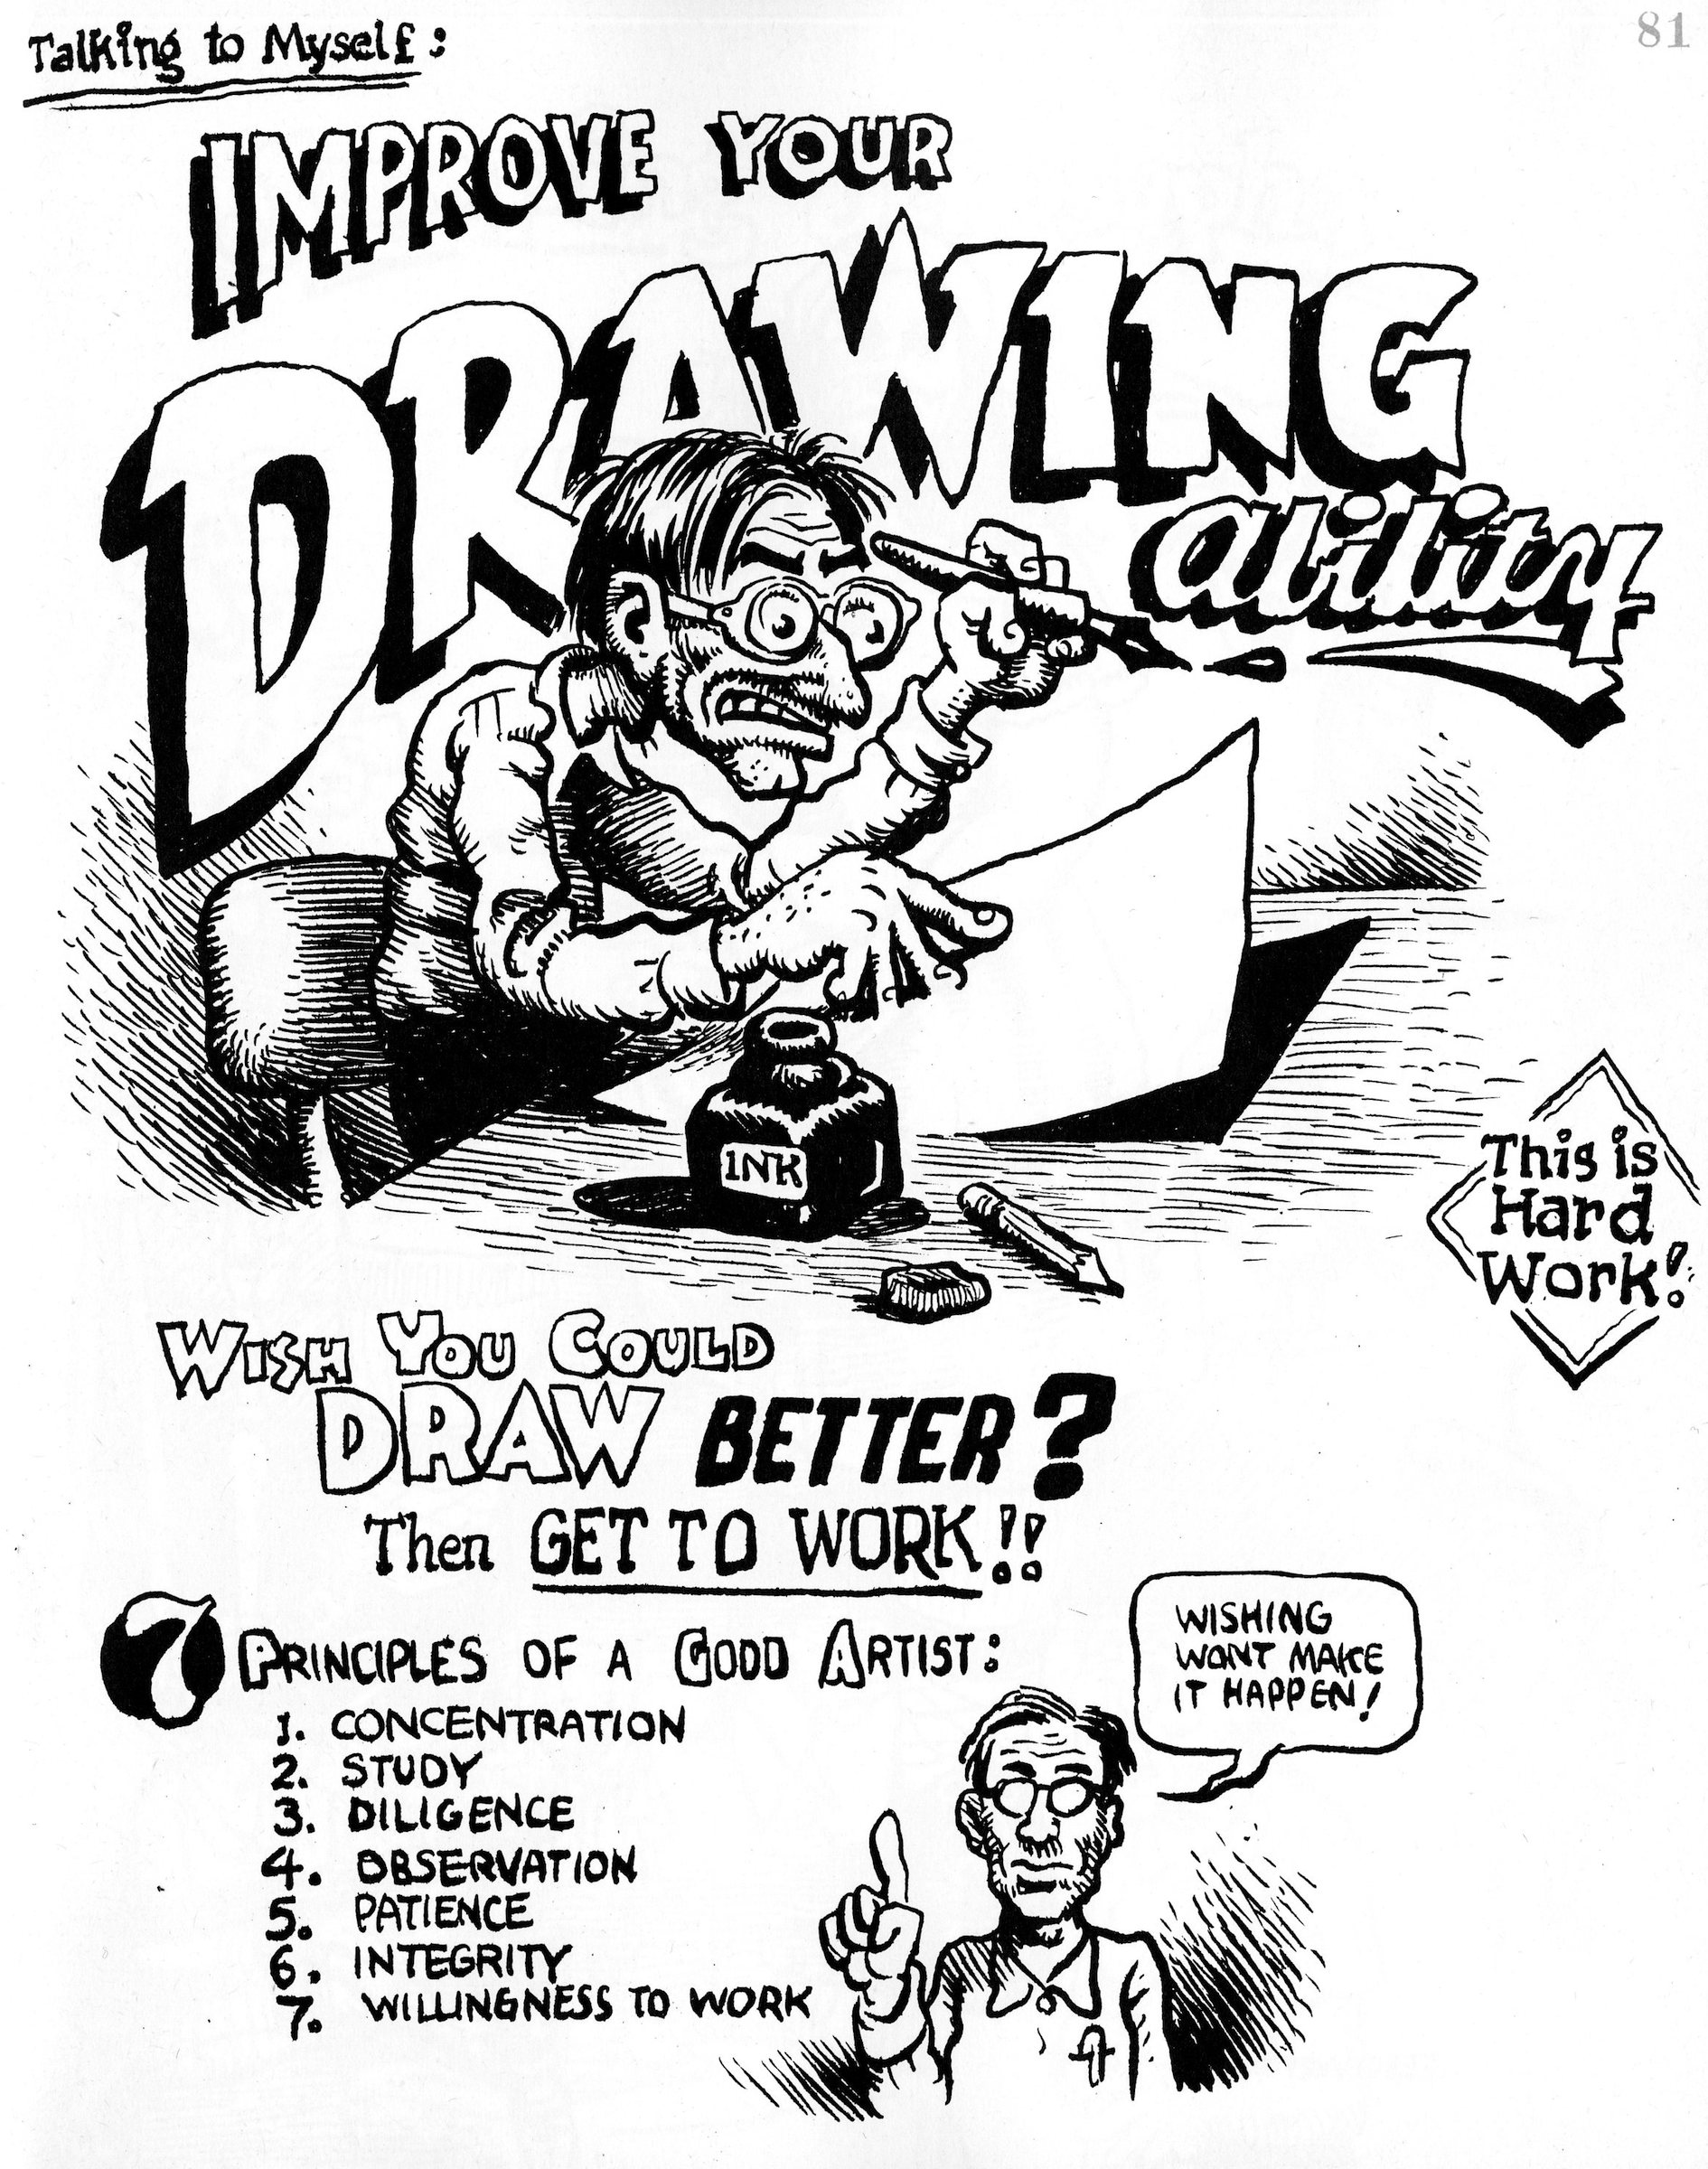 No Drawing